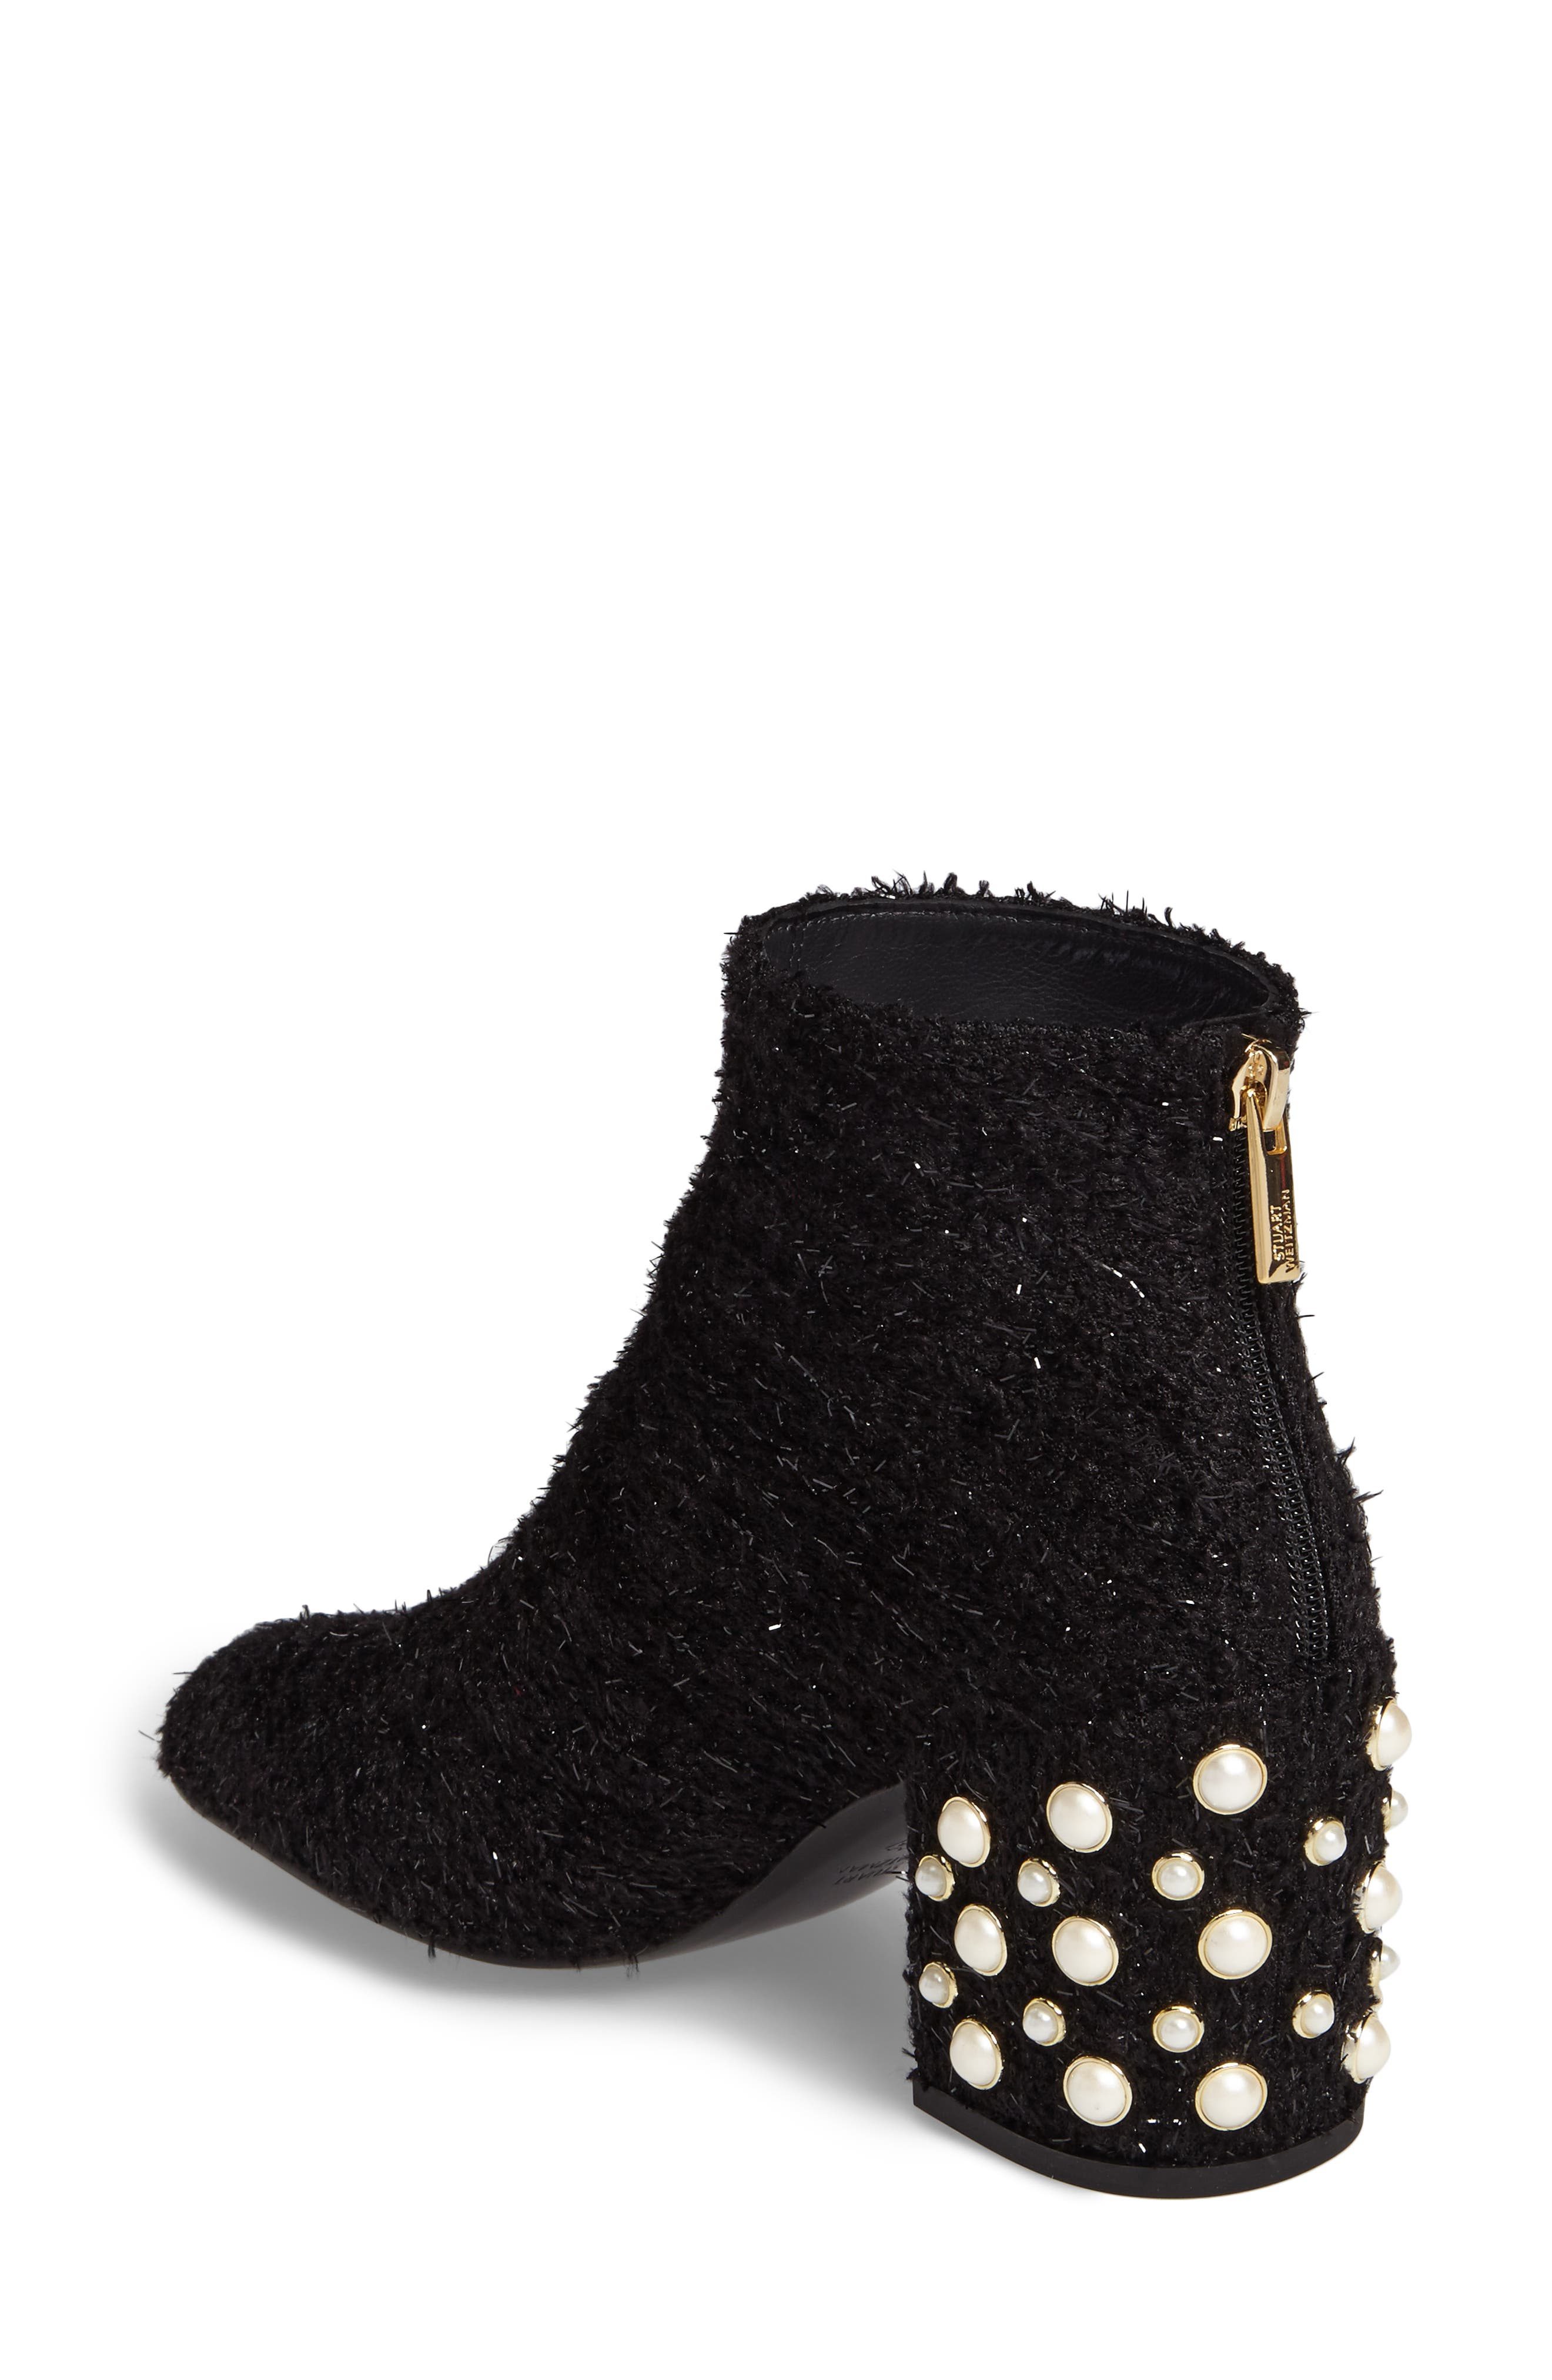 Pearlbacari Bootie,                             Alternate thumbnail 2, color,                             Black Boucle